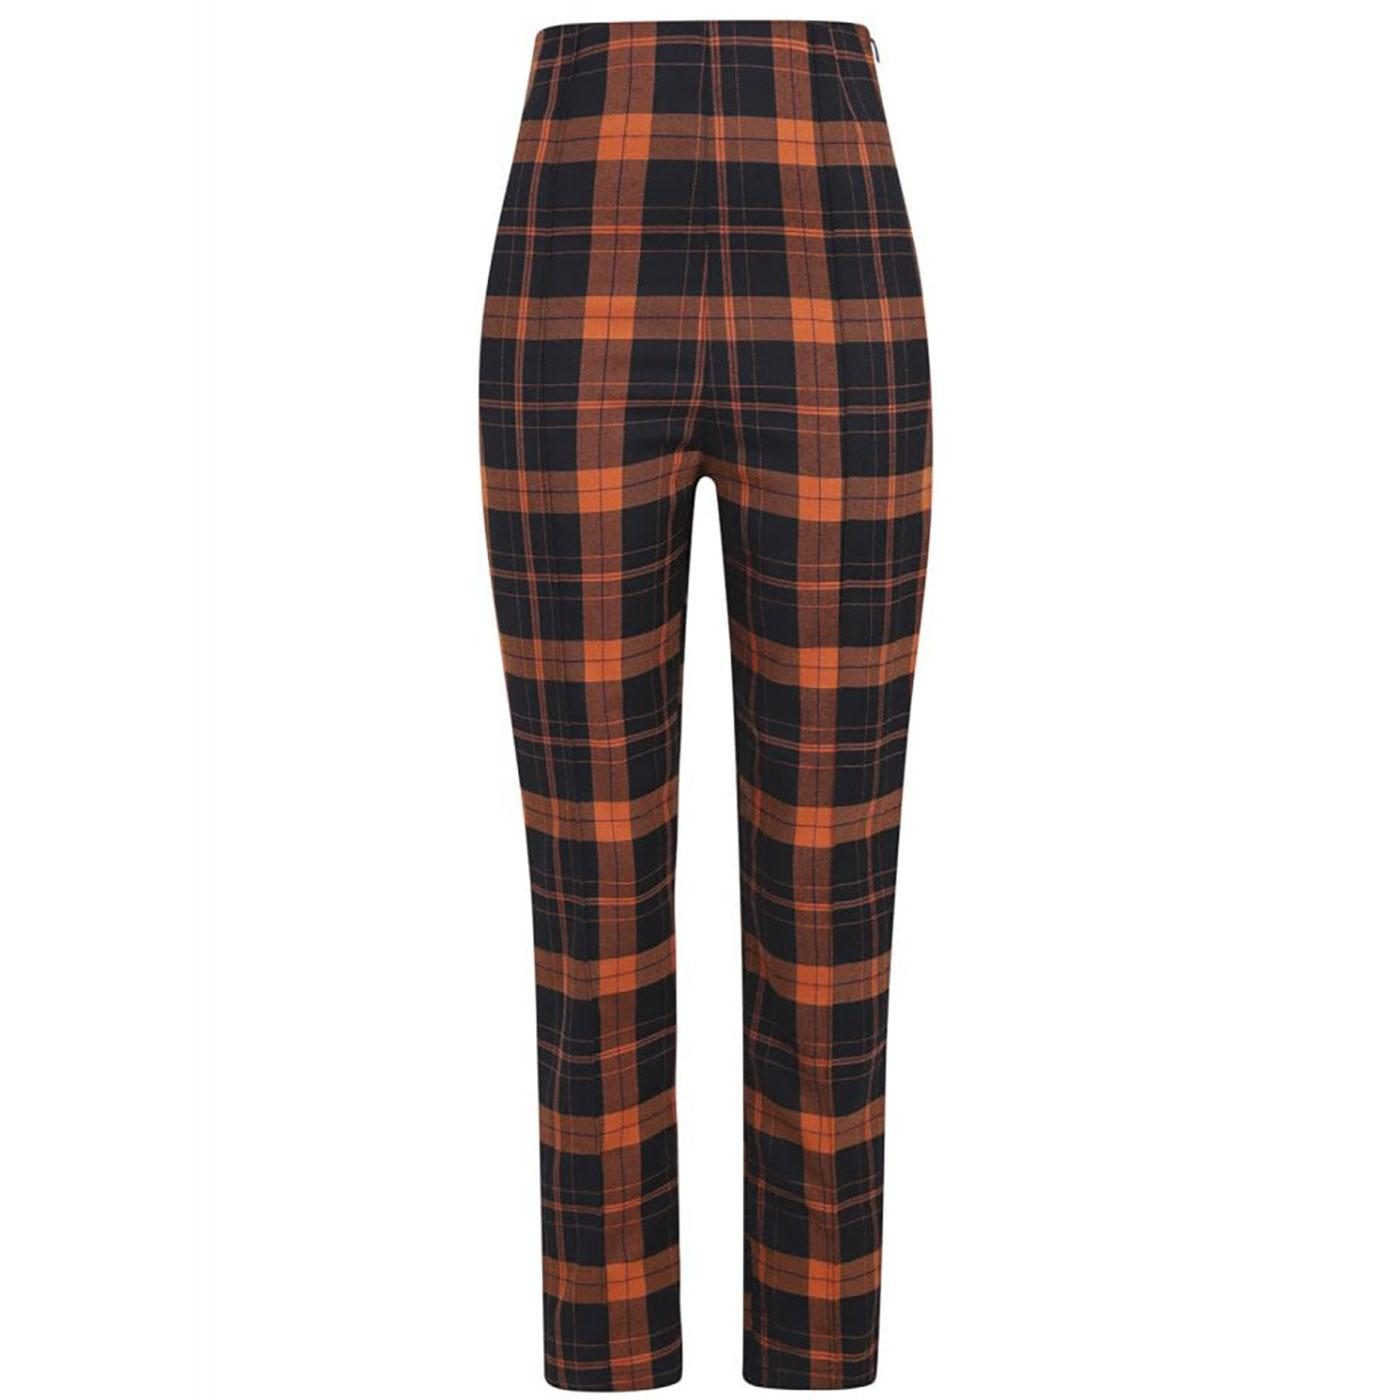 Bonnie COLLECTIF Pumpkin Check Cigarette Trousers